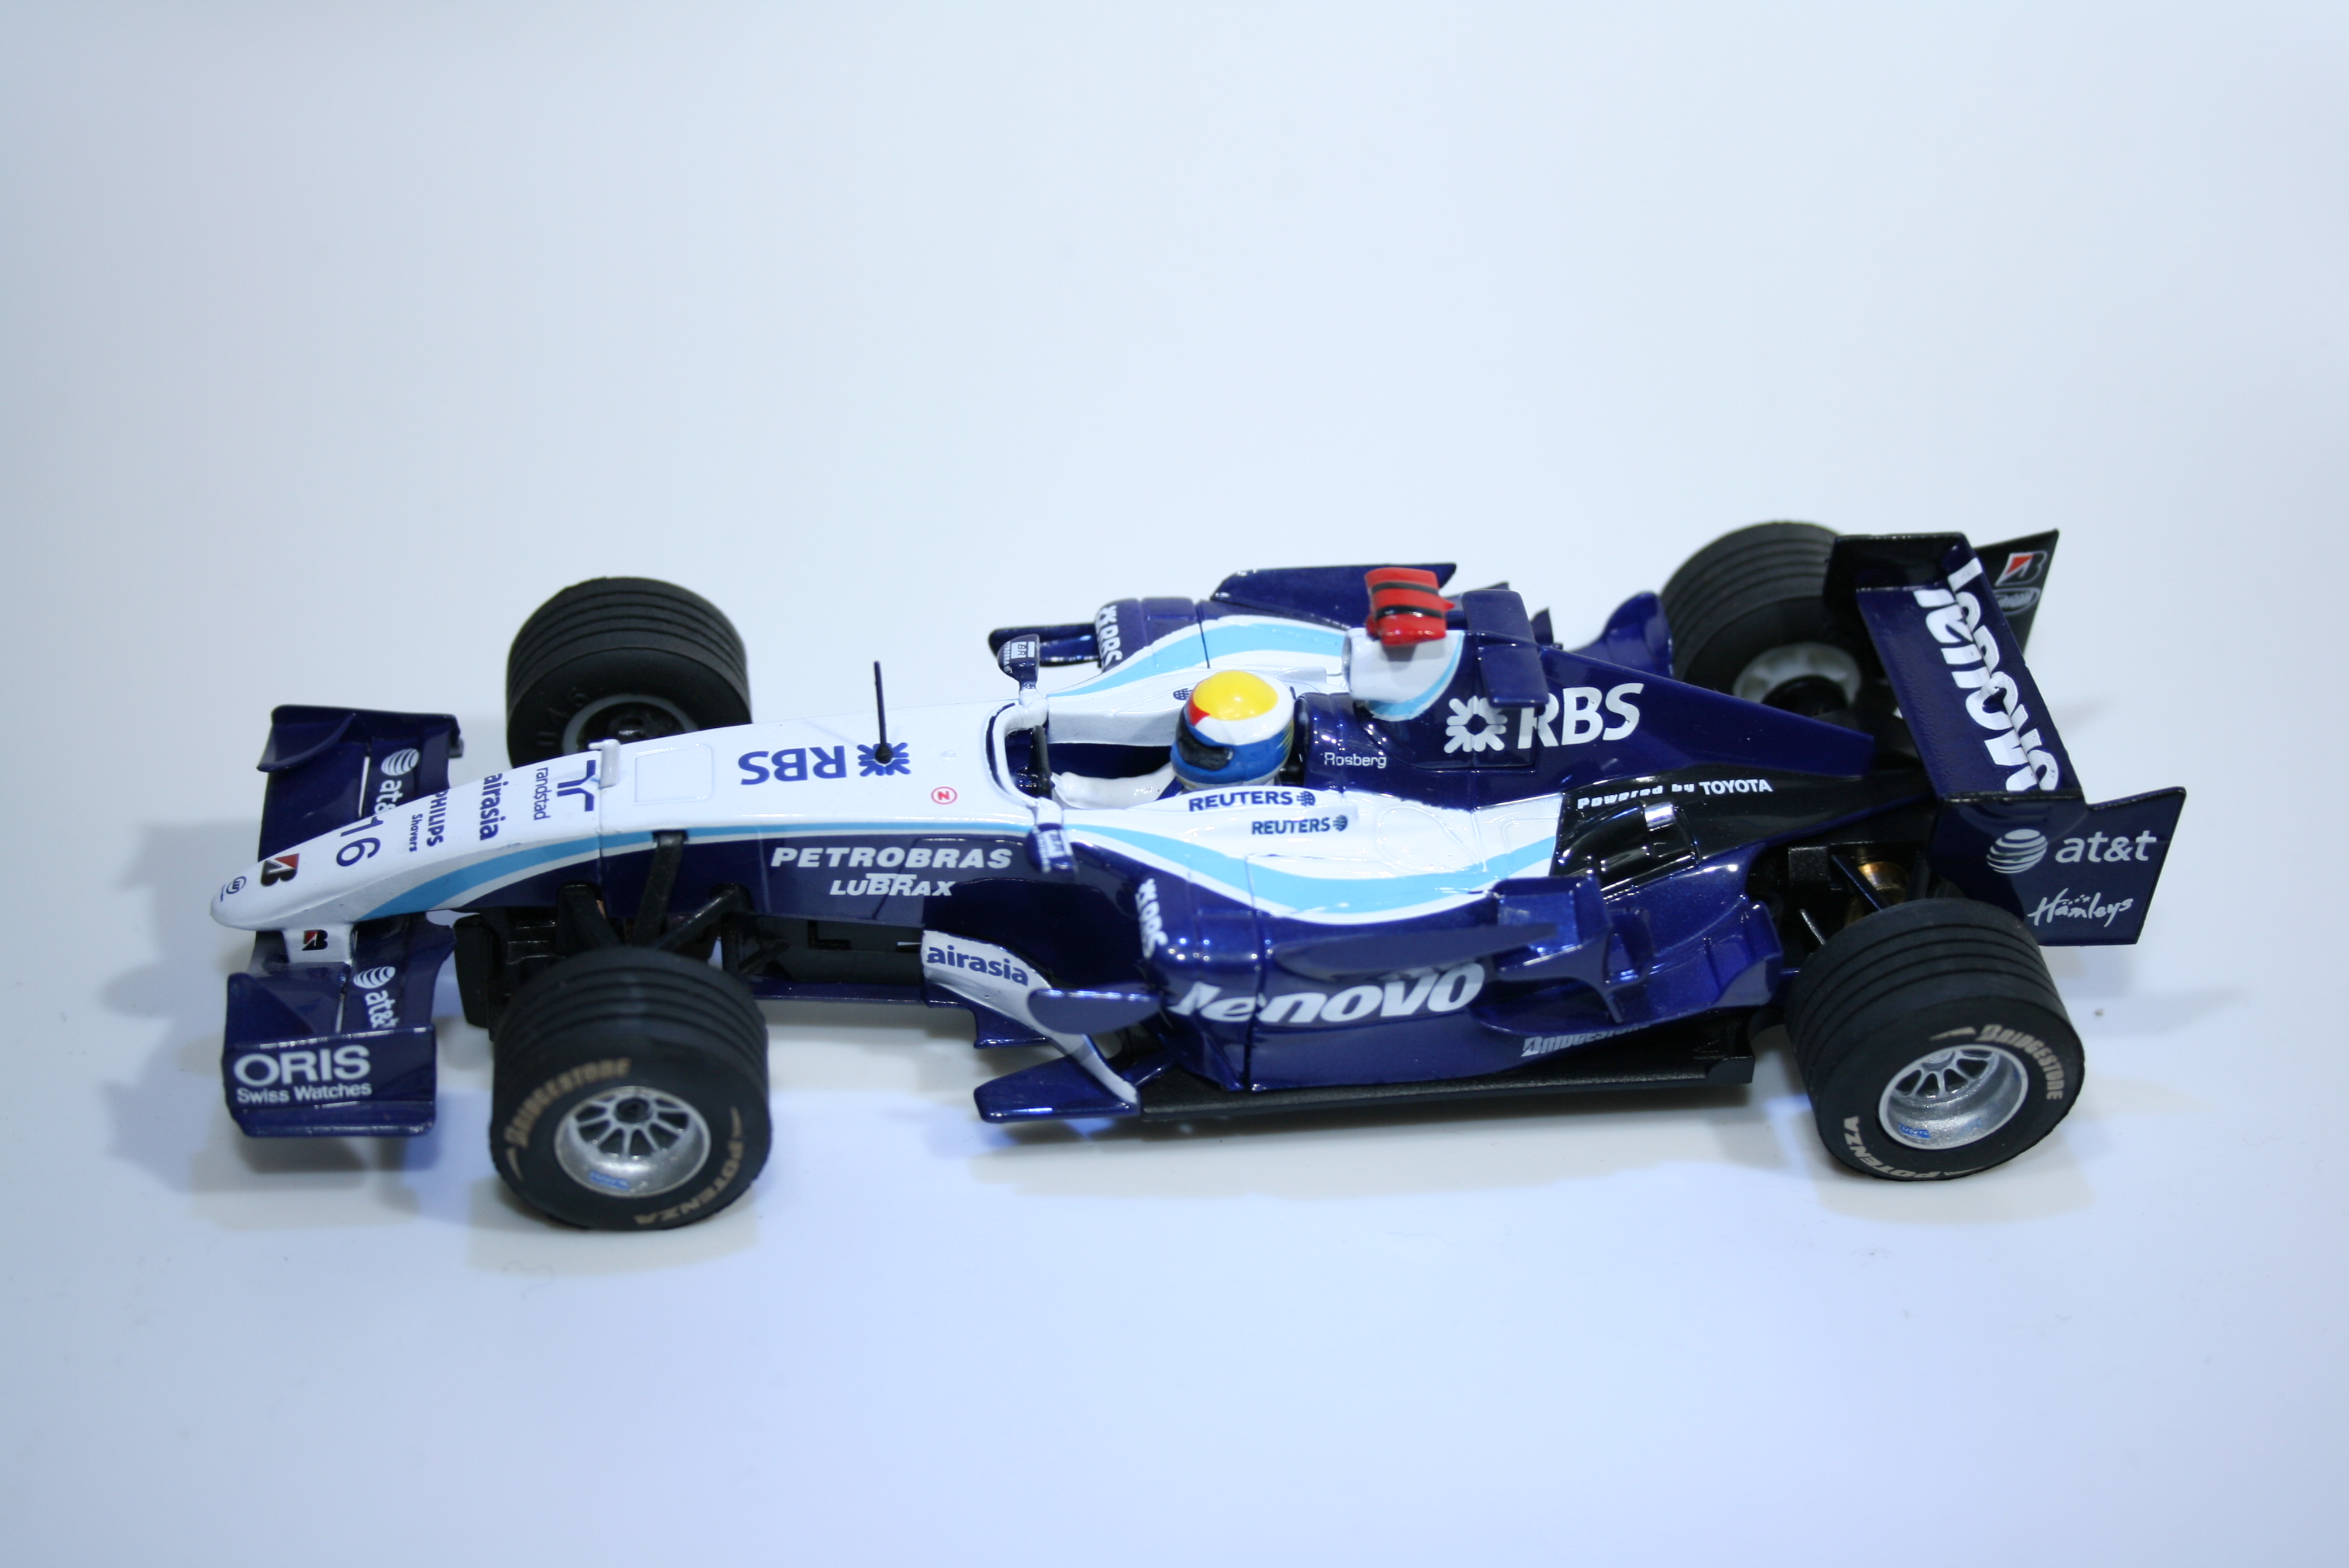 399 Williams FW29 2007 N Rosberg Scx 62880 2008 Boxed